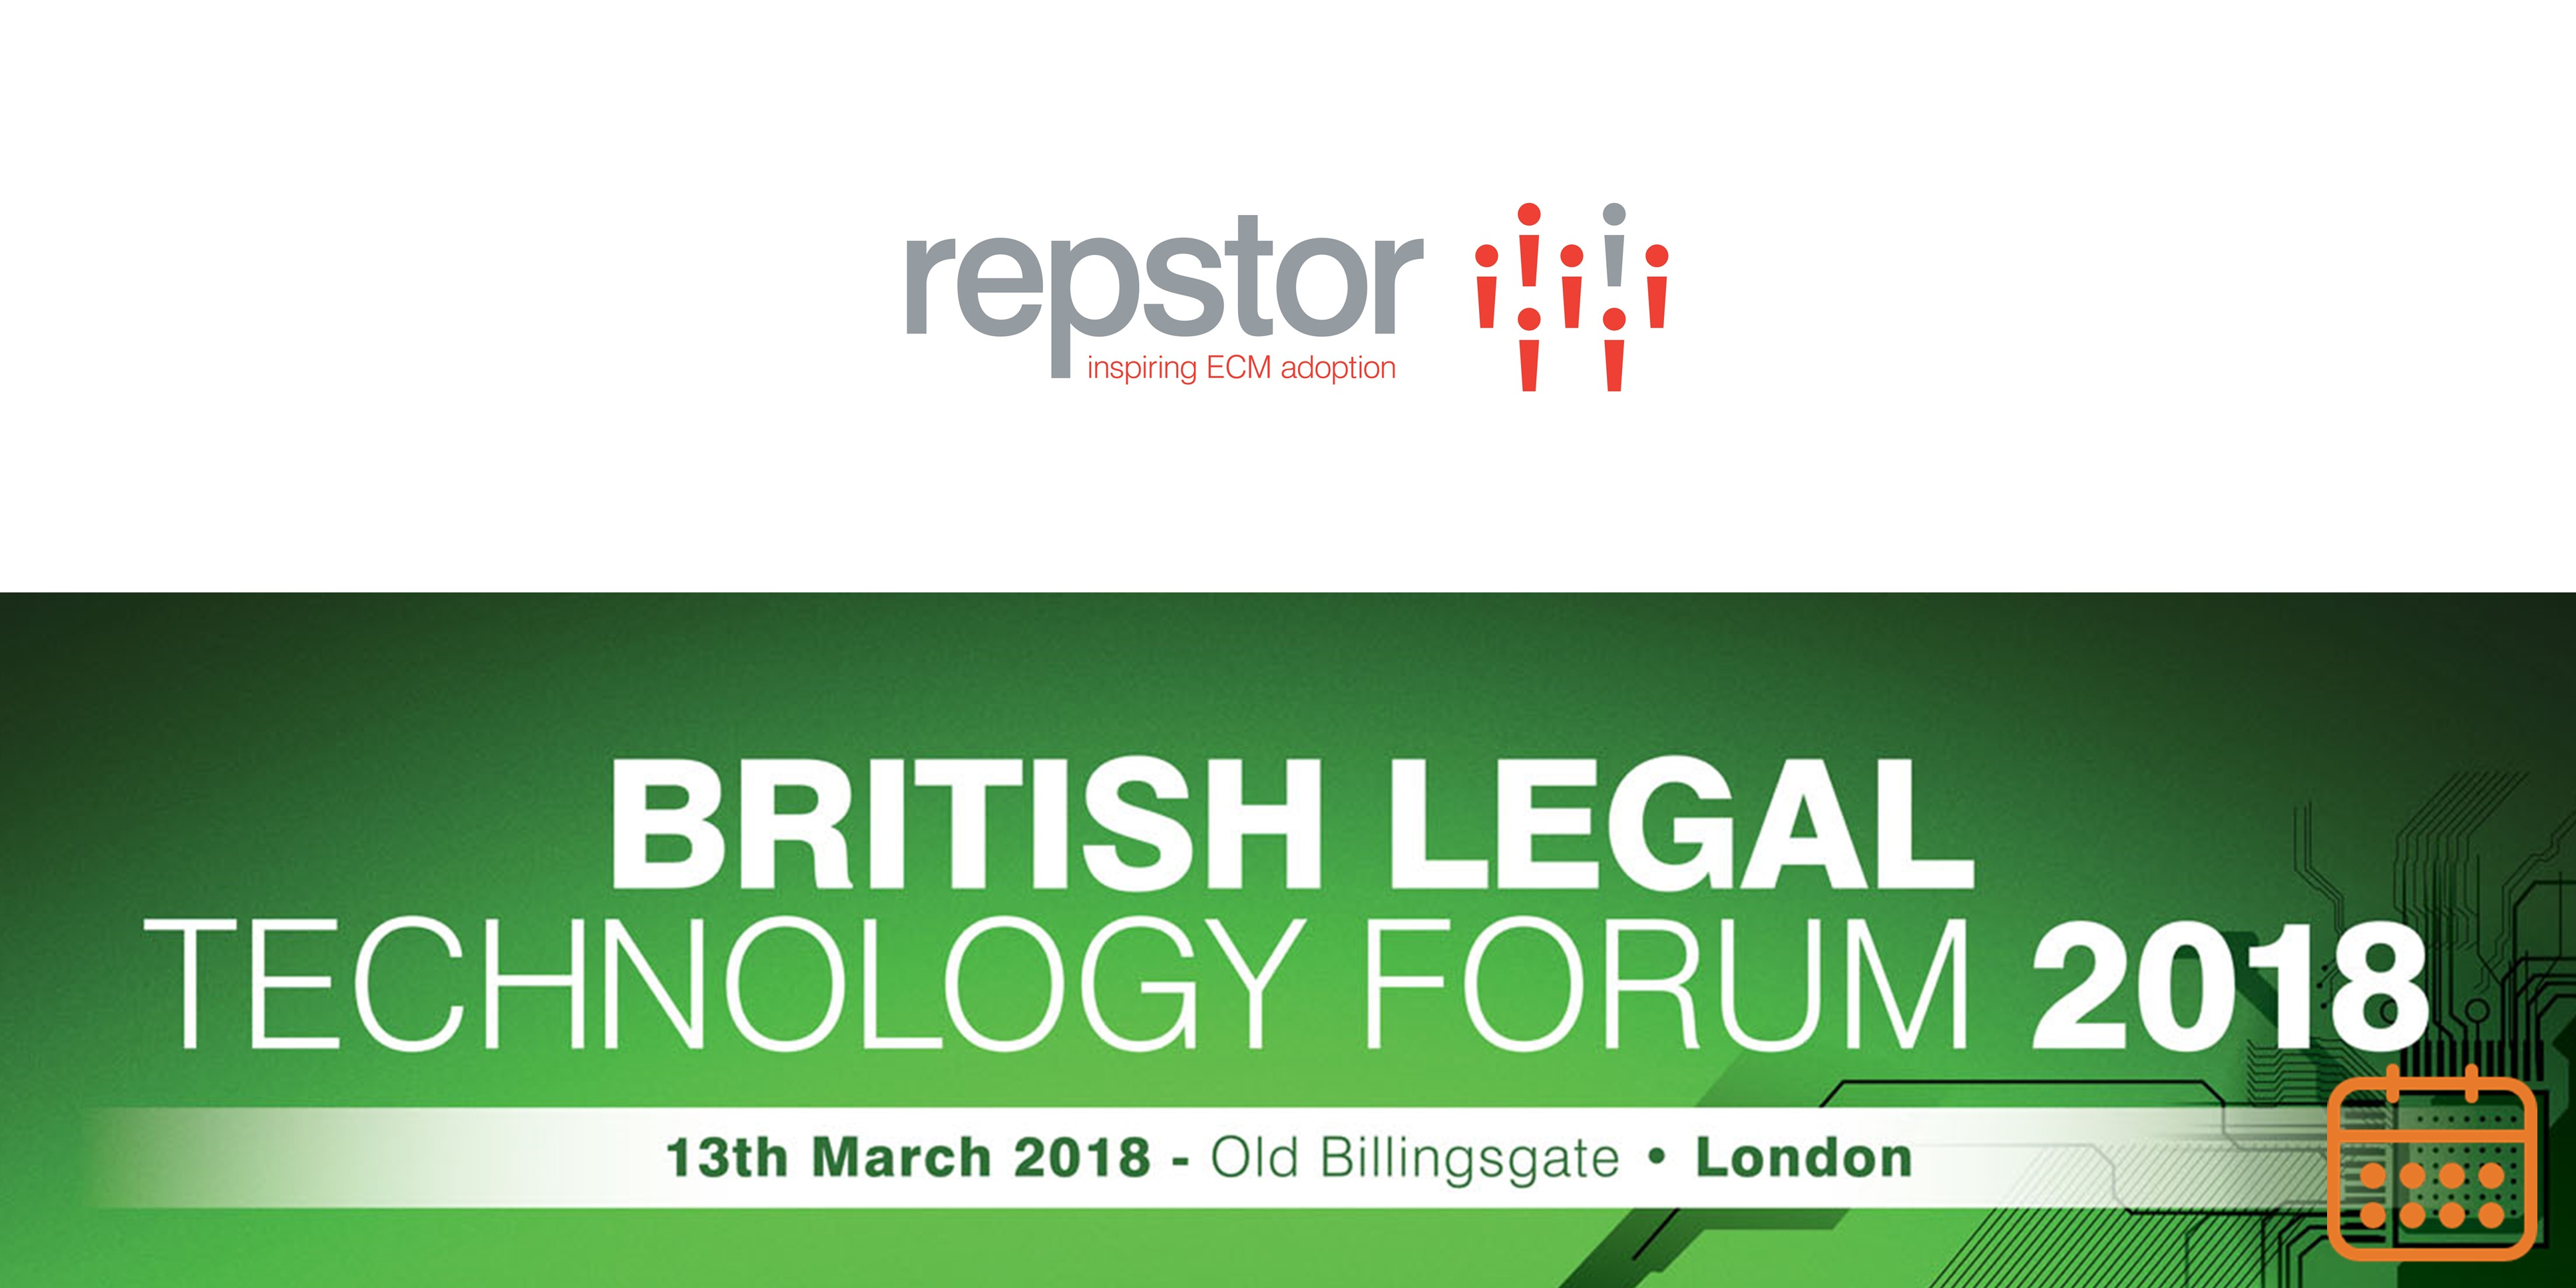 Join-us-at-the-Repstor-booth-at-the-British-Legal-Technology-Forum-2018